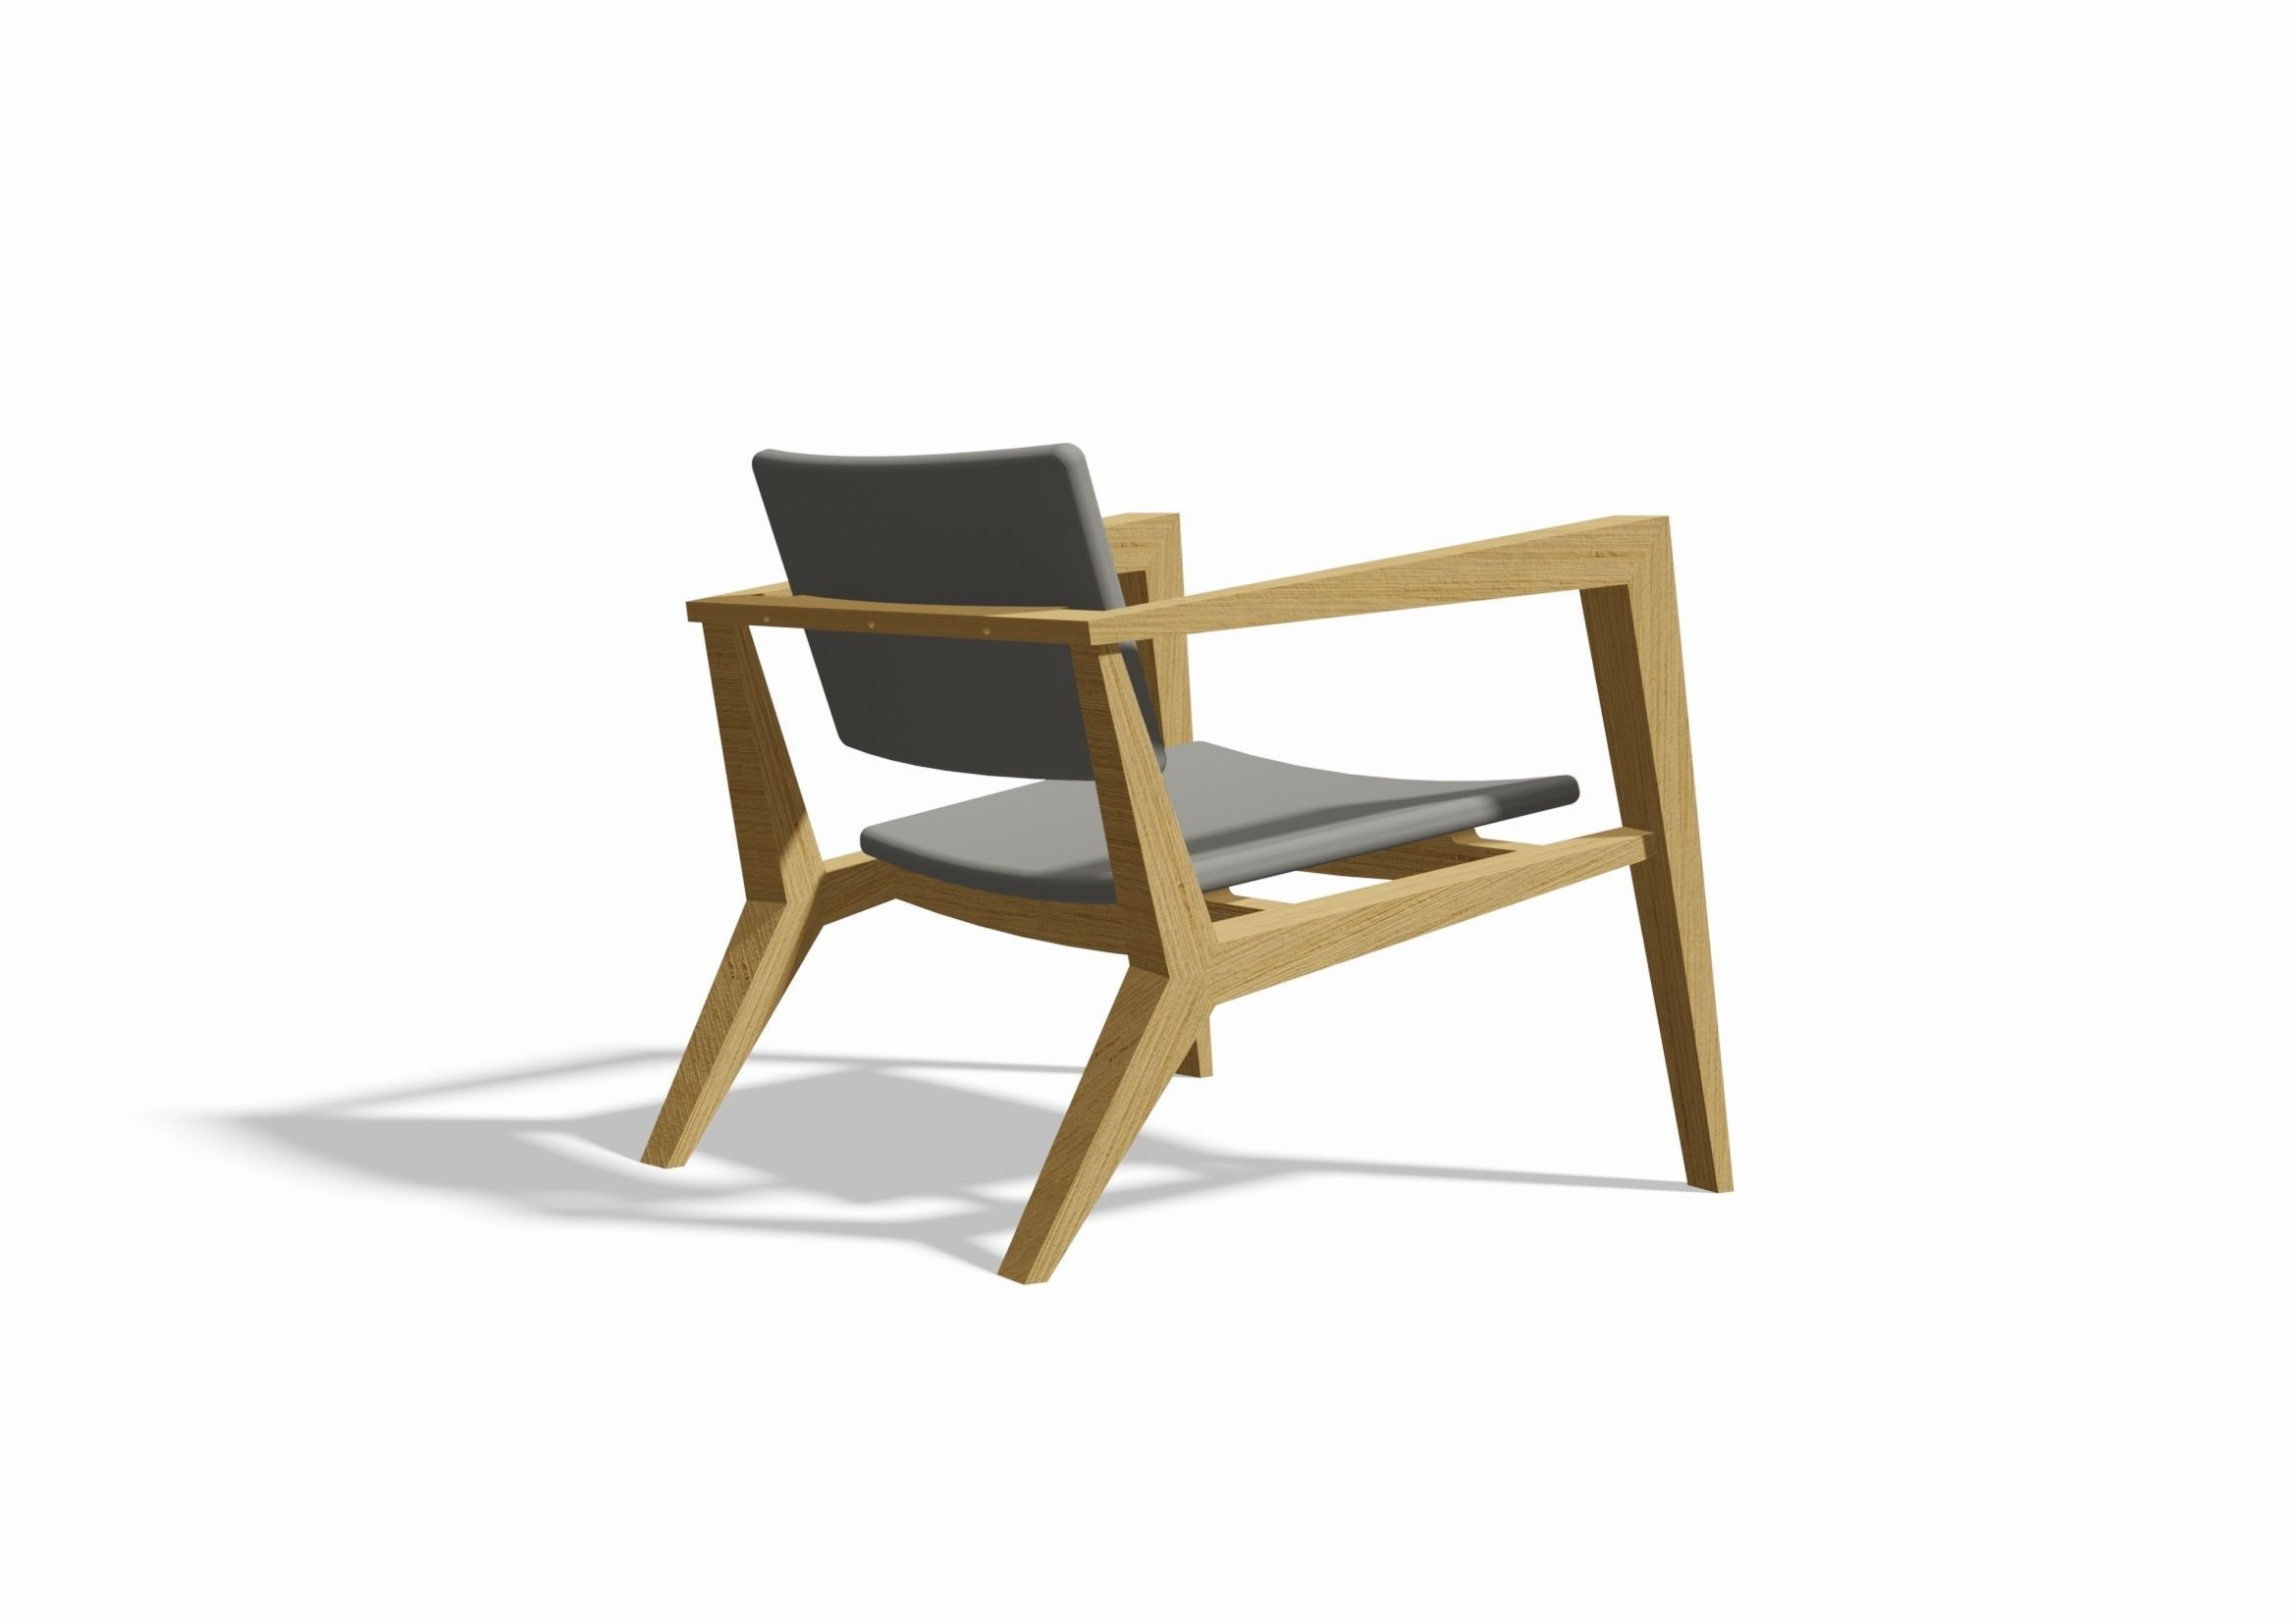 Conica easy chair by Skandiform 3D model